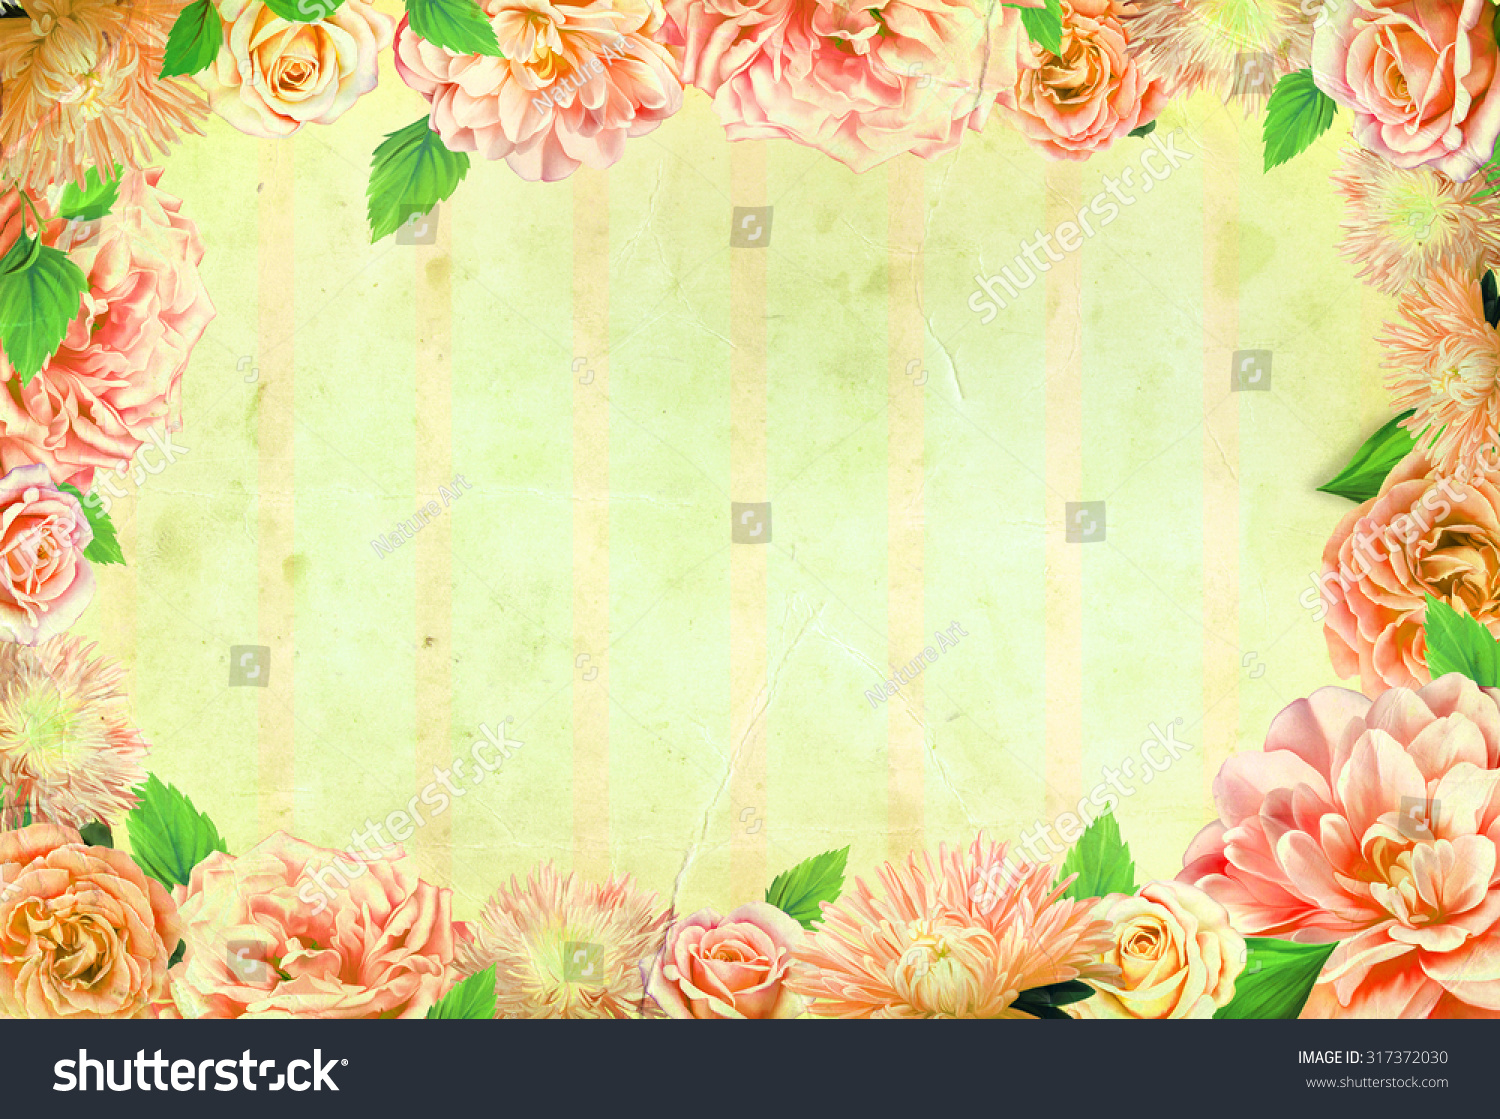 Yellow vintage floral background